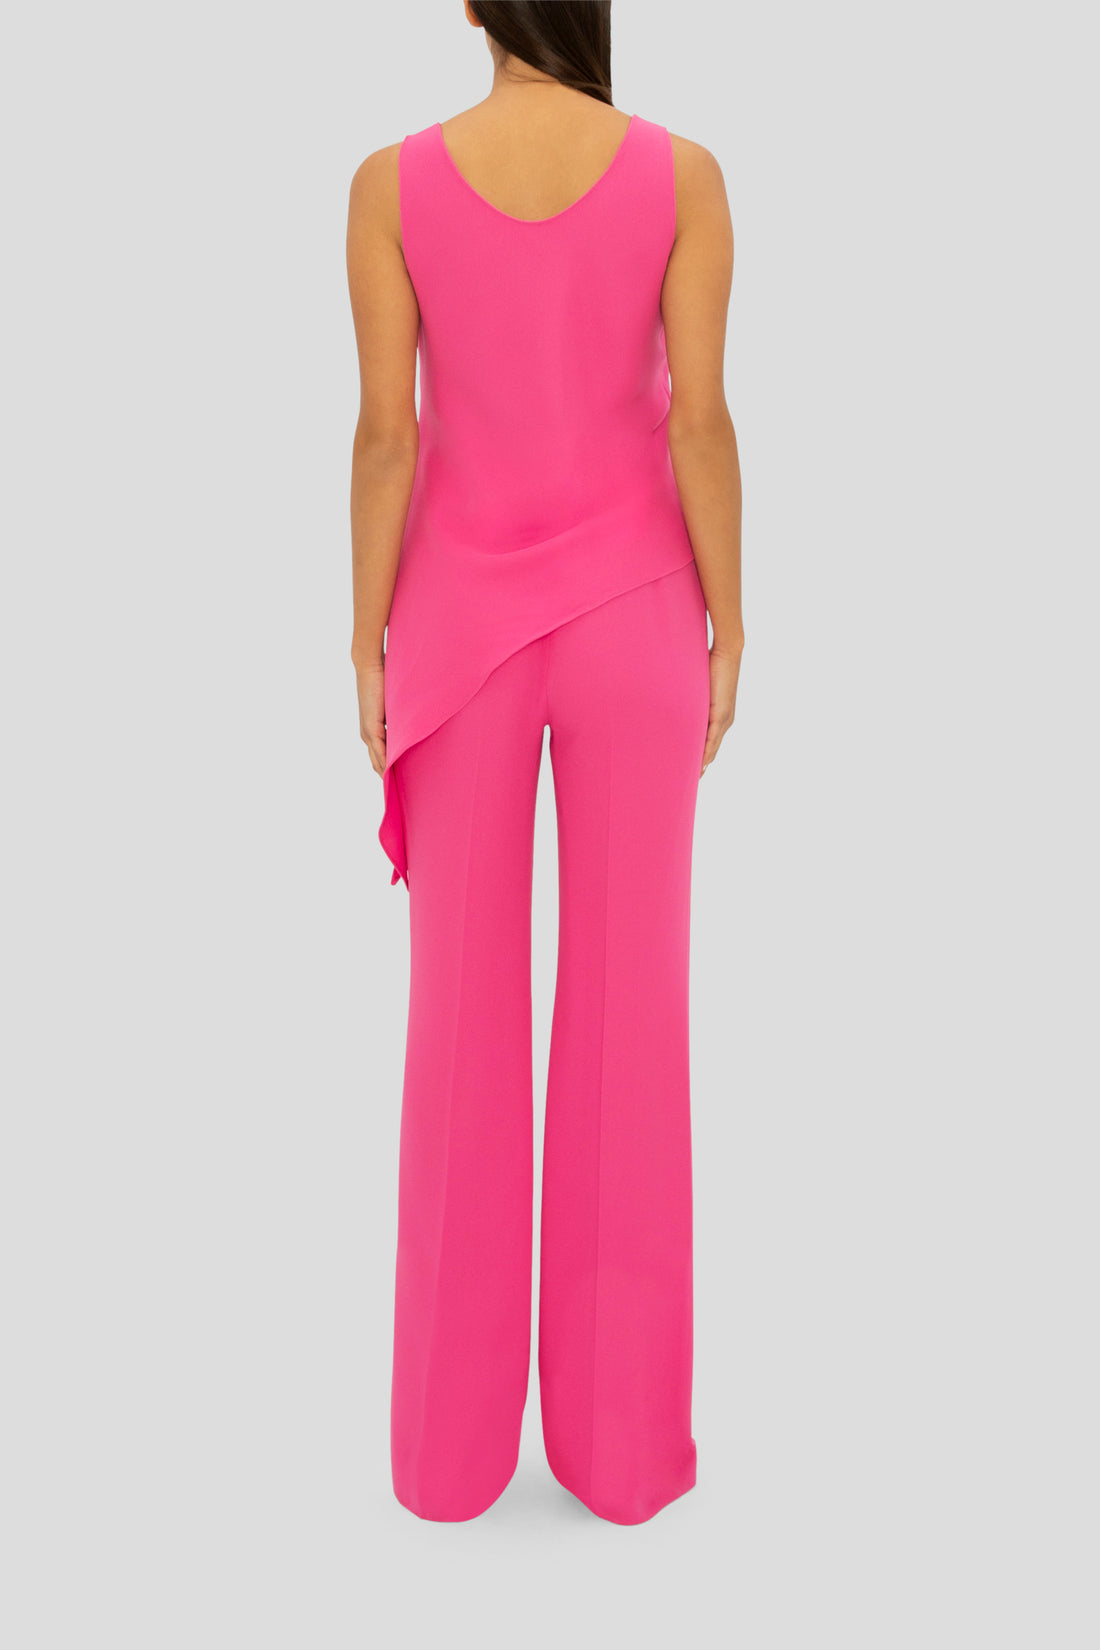 THE PASSION PINK FLUID PANT